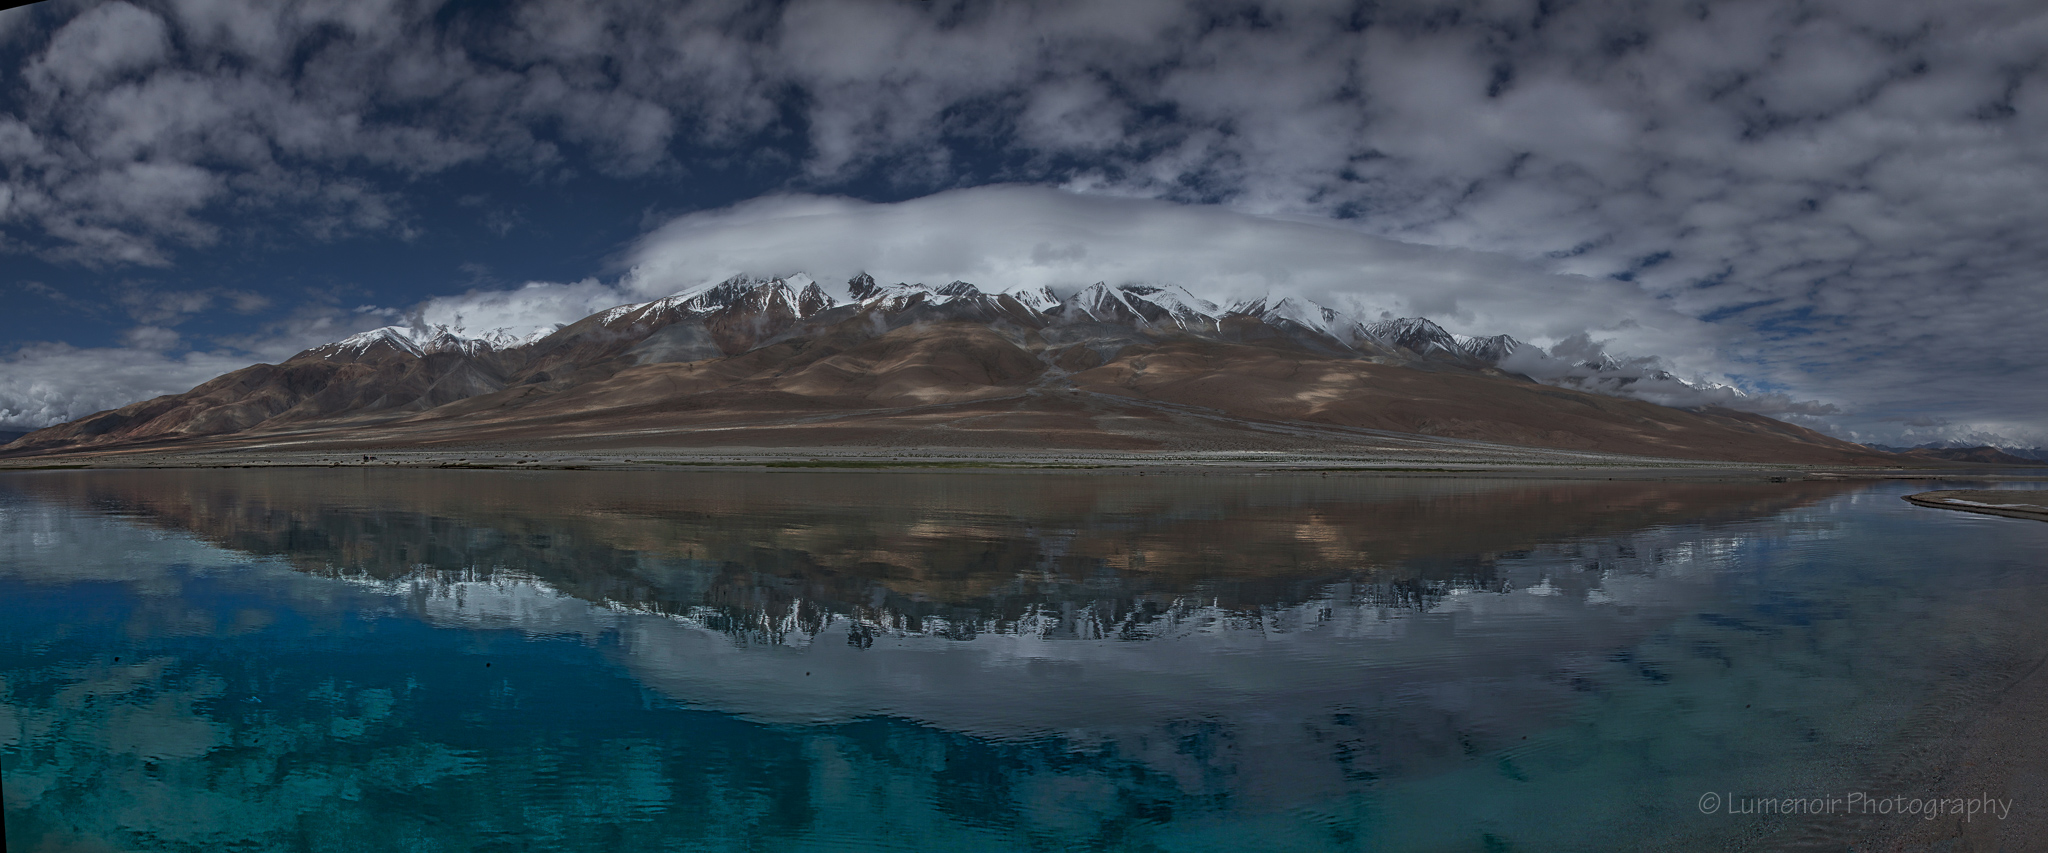 A shore of Pangong Tso seen from the water.